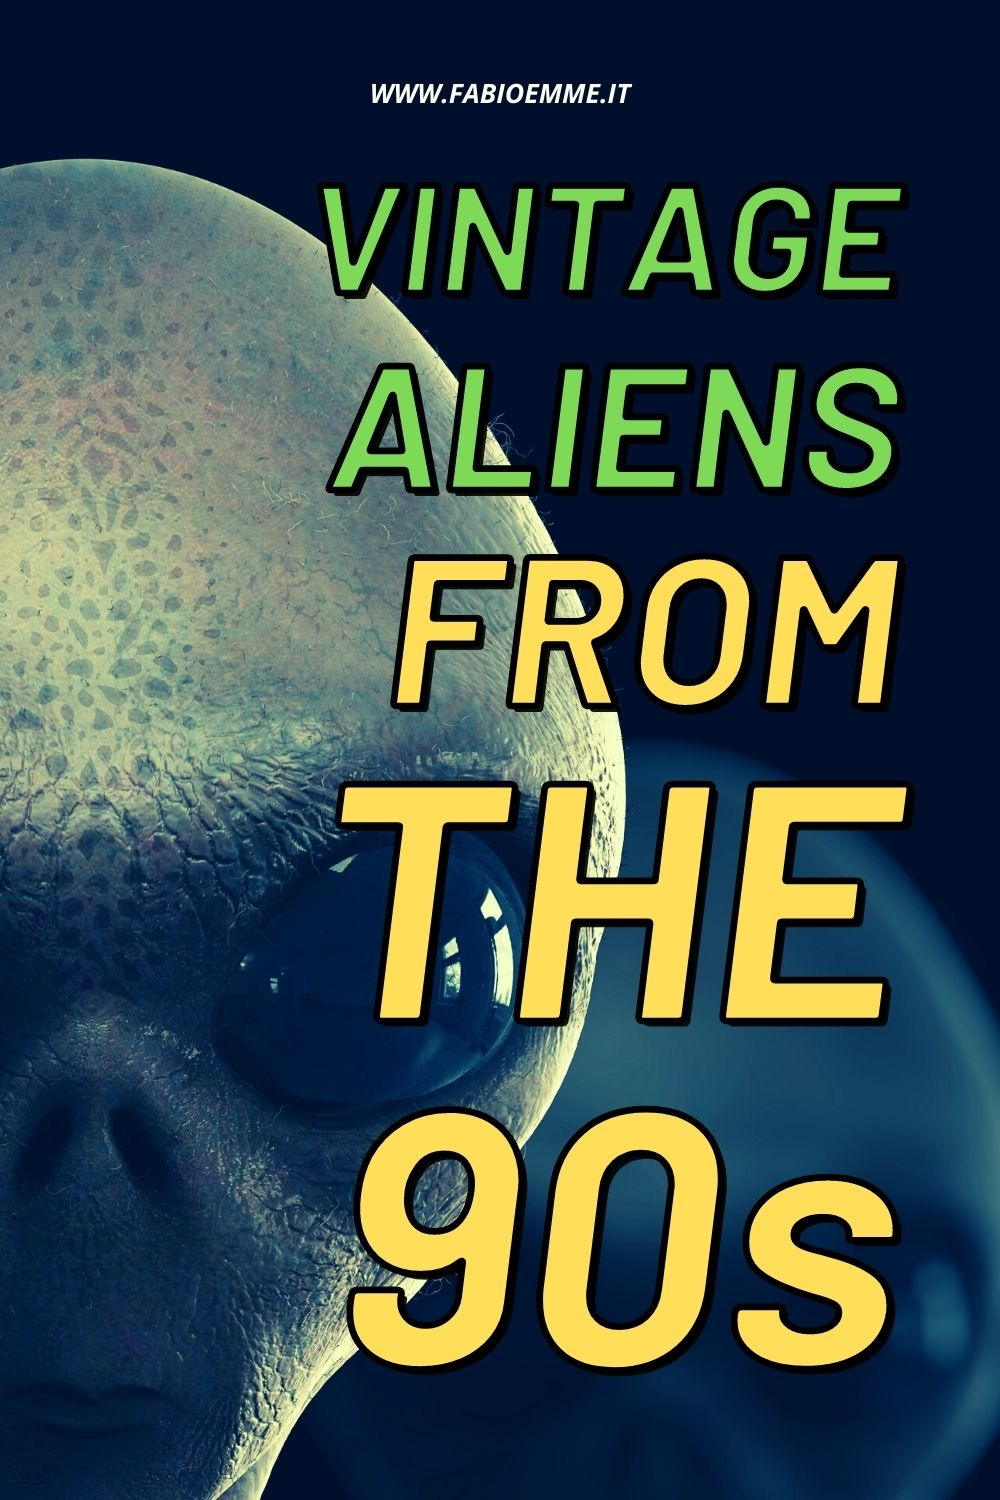 They come from space ... and also from the 90s!! 3 Vintage Aliens from the 90s selected for you that are a must have for sci-fi lover. #MOVIES